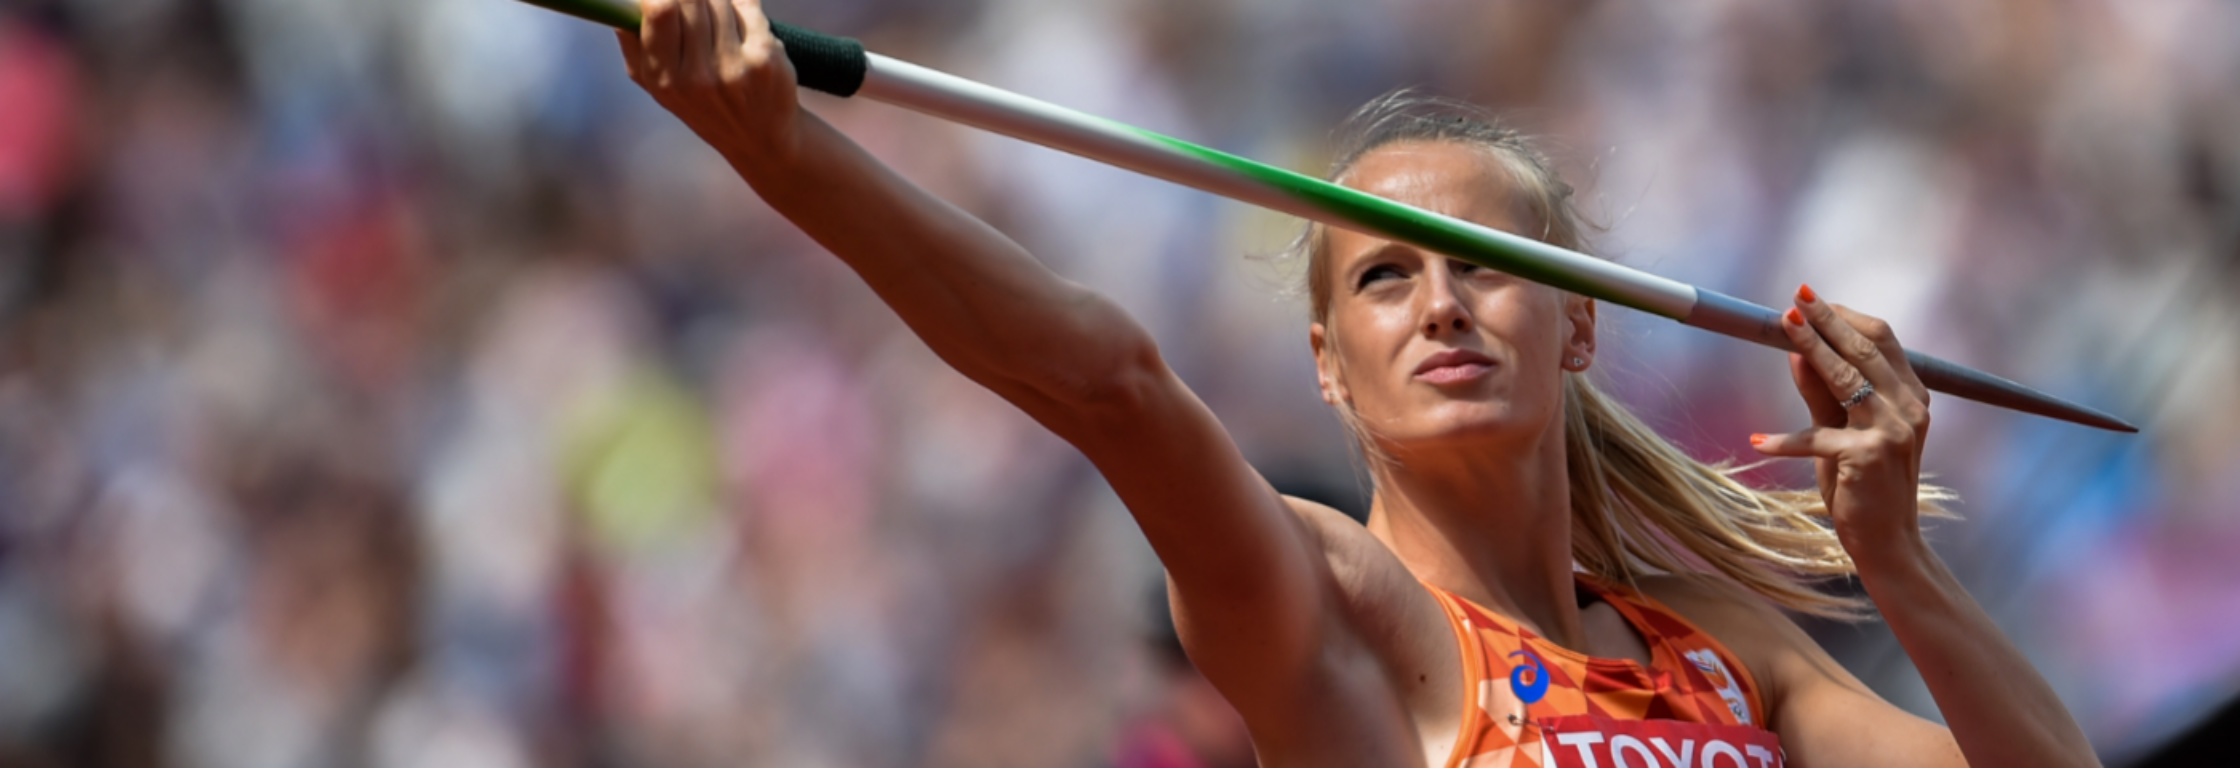 Anouk Vetter: 'Get your game face on!'